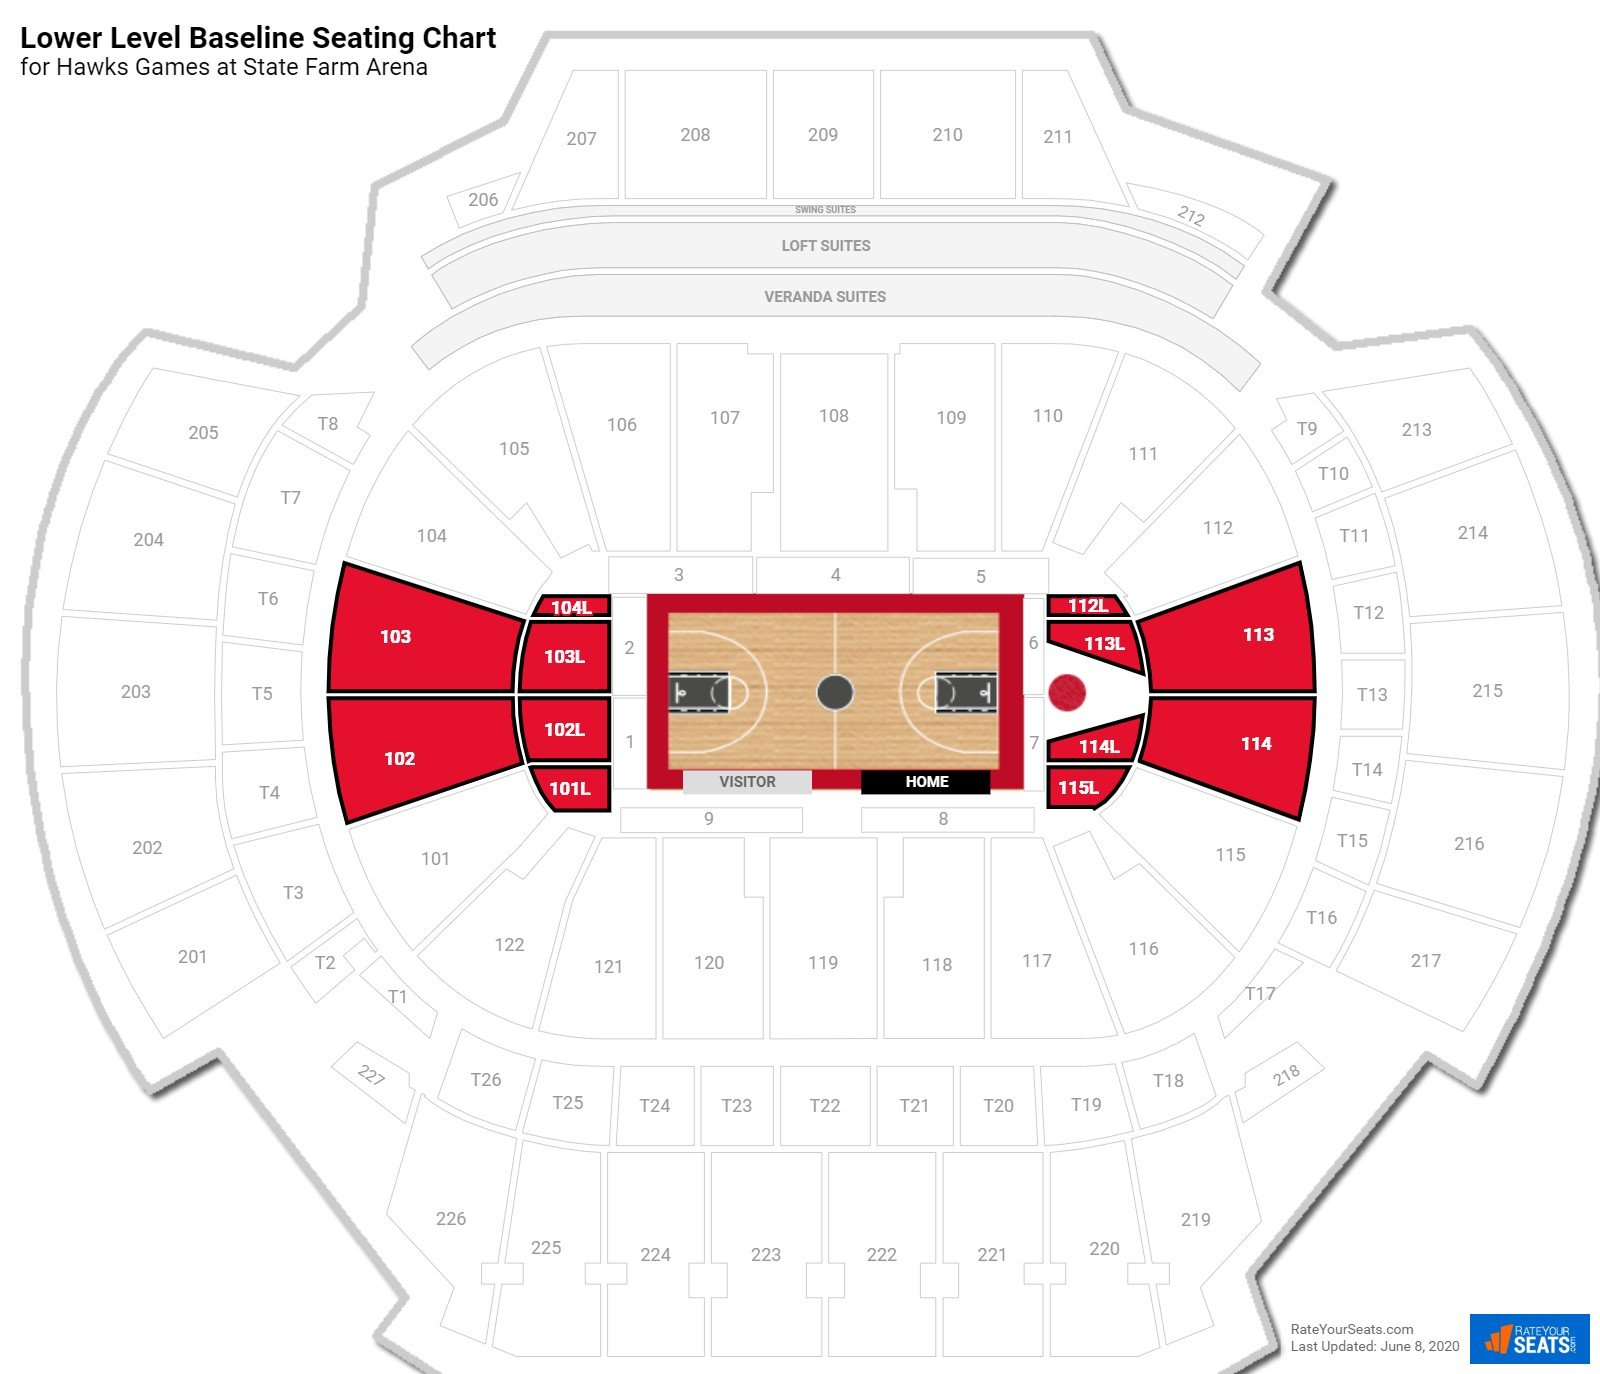 Philips Arena Lower Level Baseline seating chart